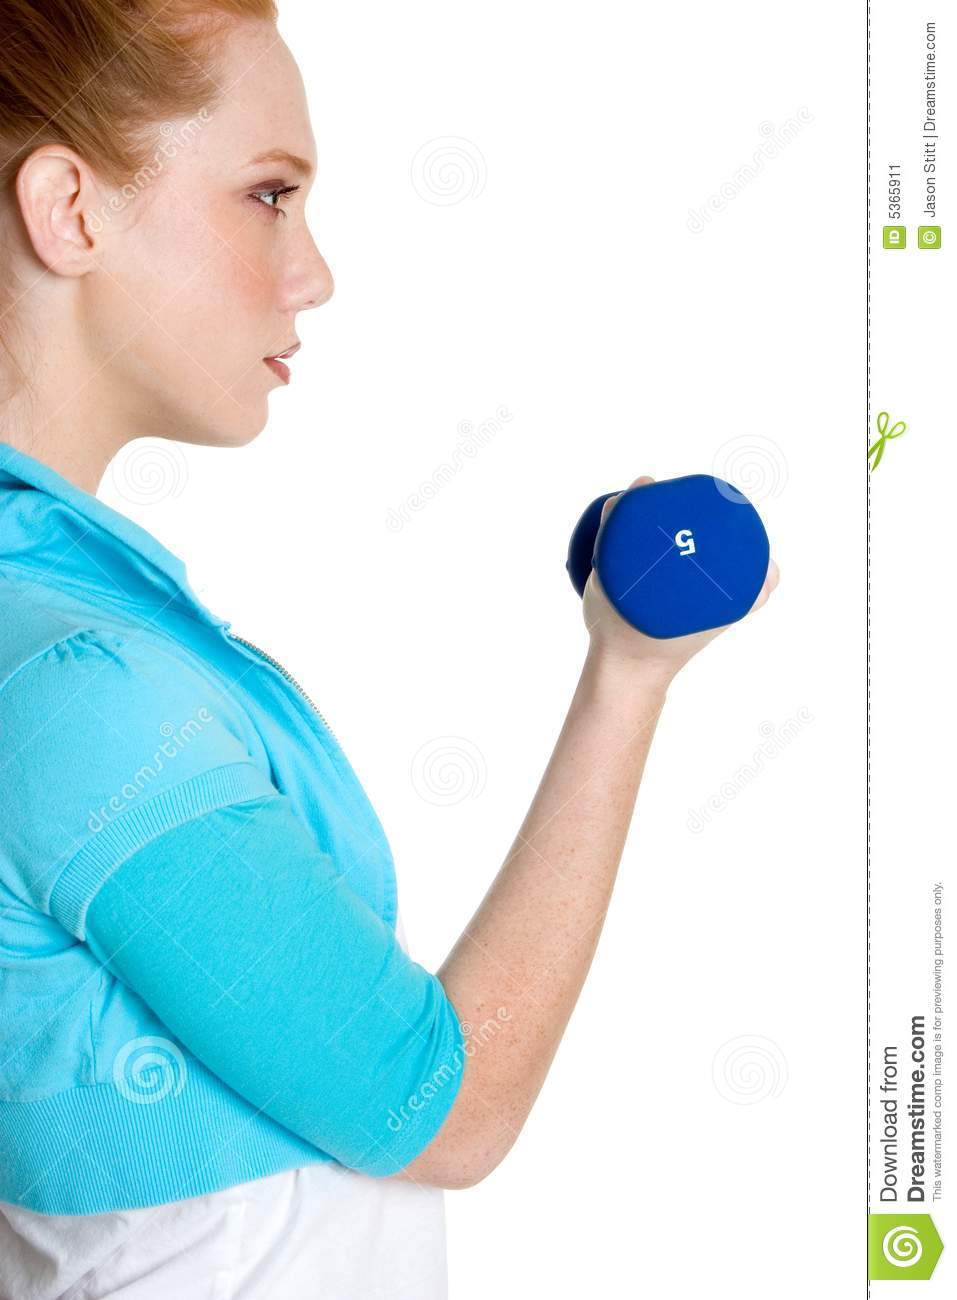 Person Lifting Weights Stock Image - Image: 5365911